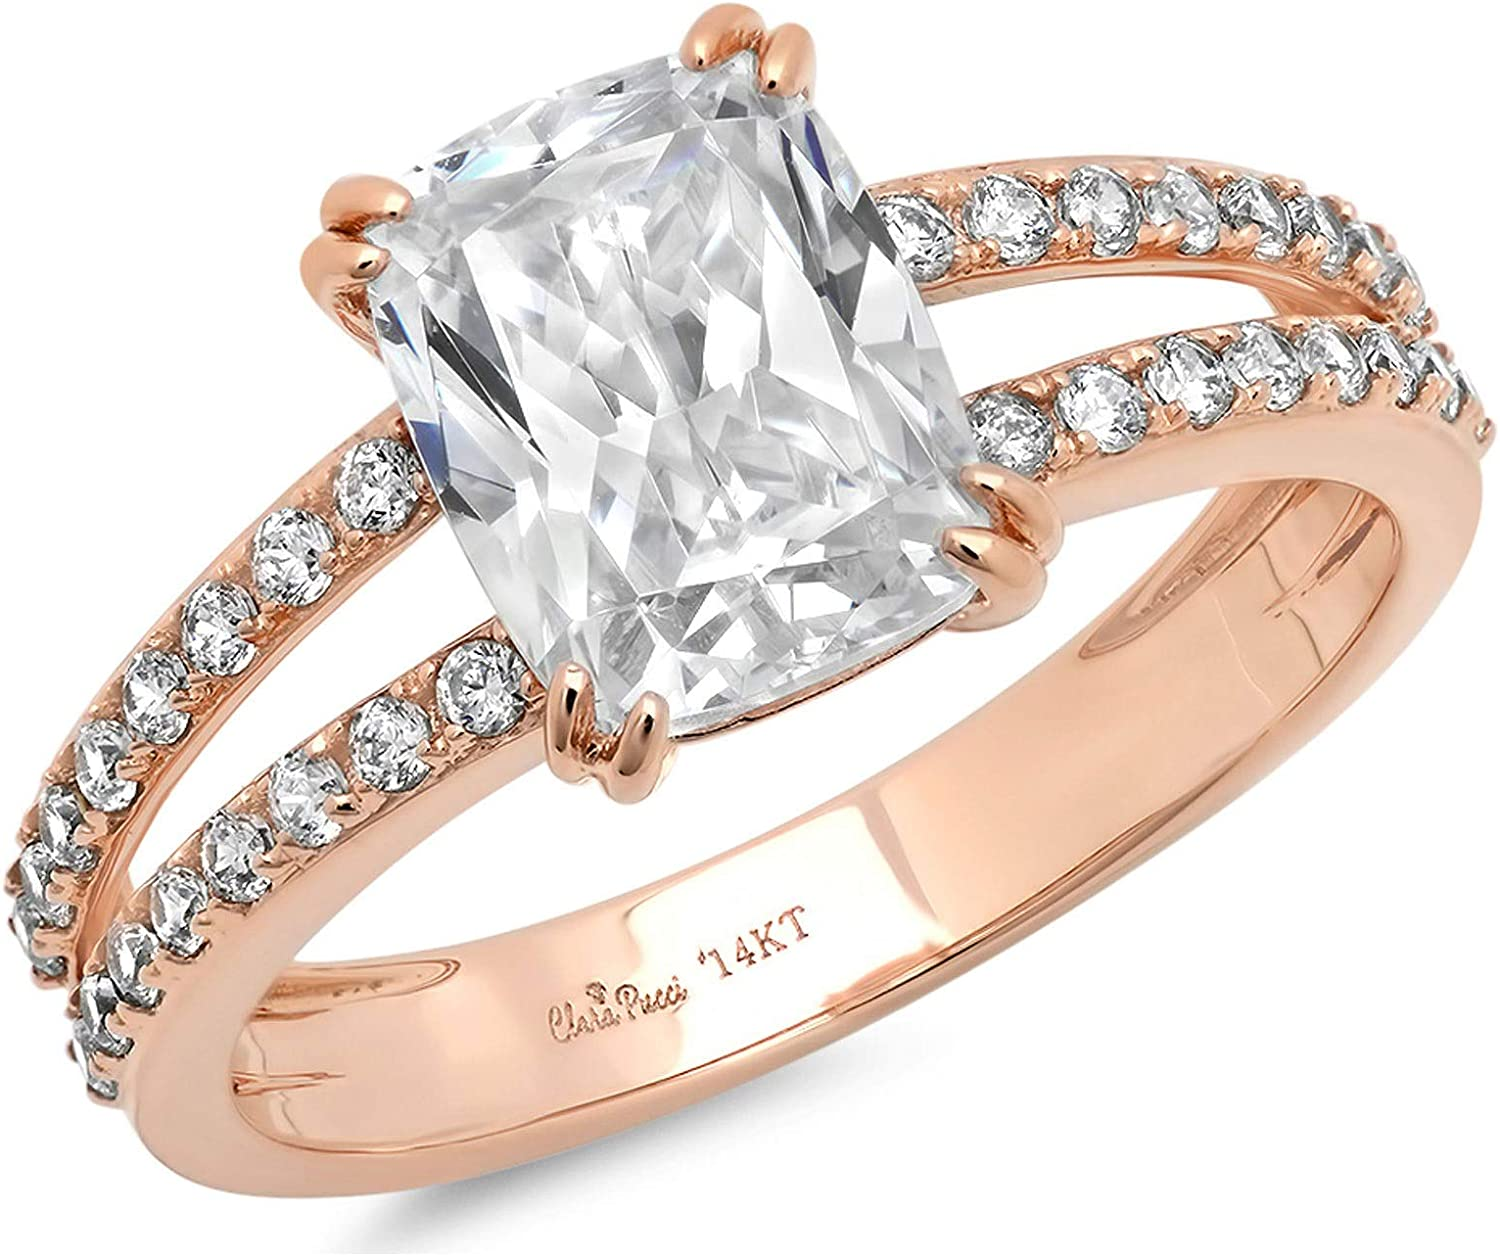 3.47ct Brilliant Cushion Cut Solitaire with accent Stunning Genuine White lab created Sapphire Ideal VVS1 D & Simulated Diamond Designer Modern Statement Accent Ring Solid 14k Rose Gold Clara Pucci